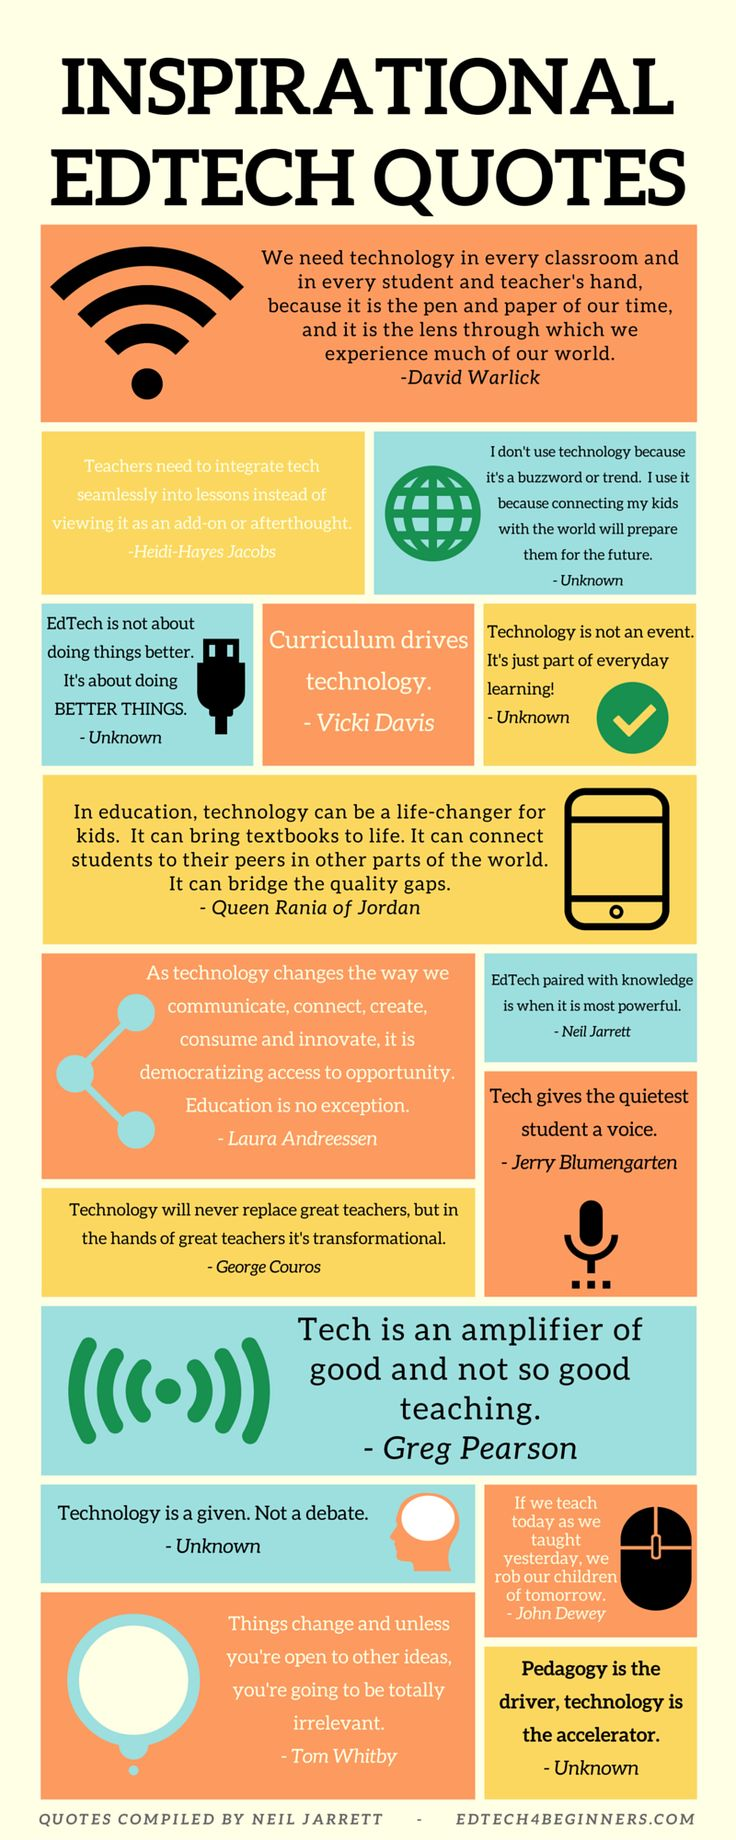 A list of inspiring quotes about educational technology (edtech).  Share and spread the great messages to fellow educators and teachers.